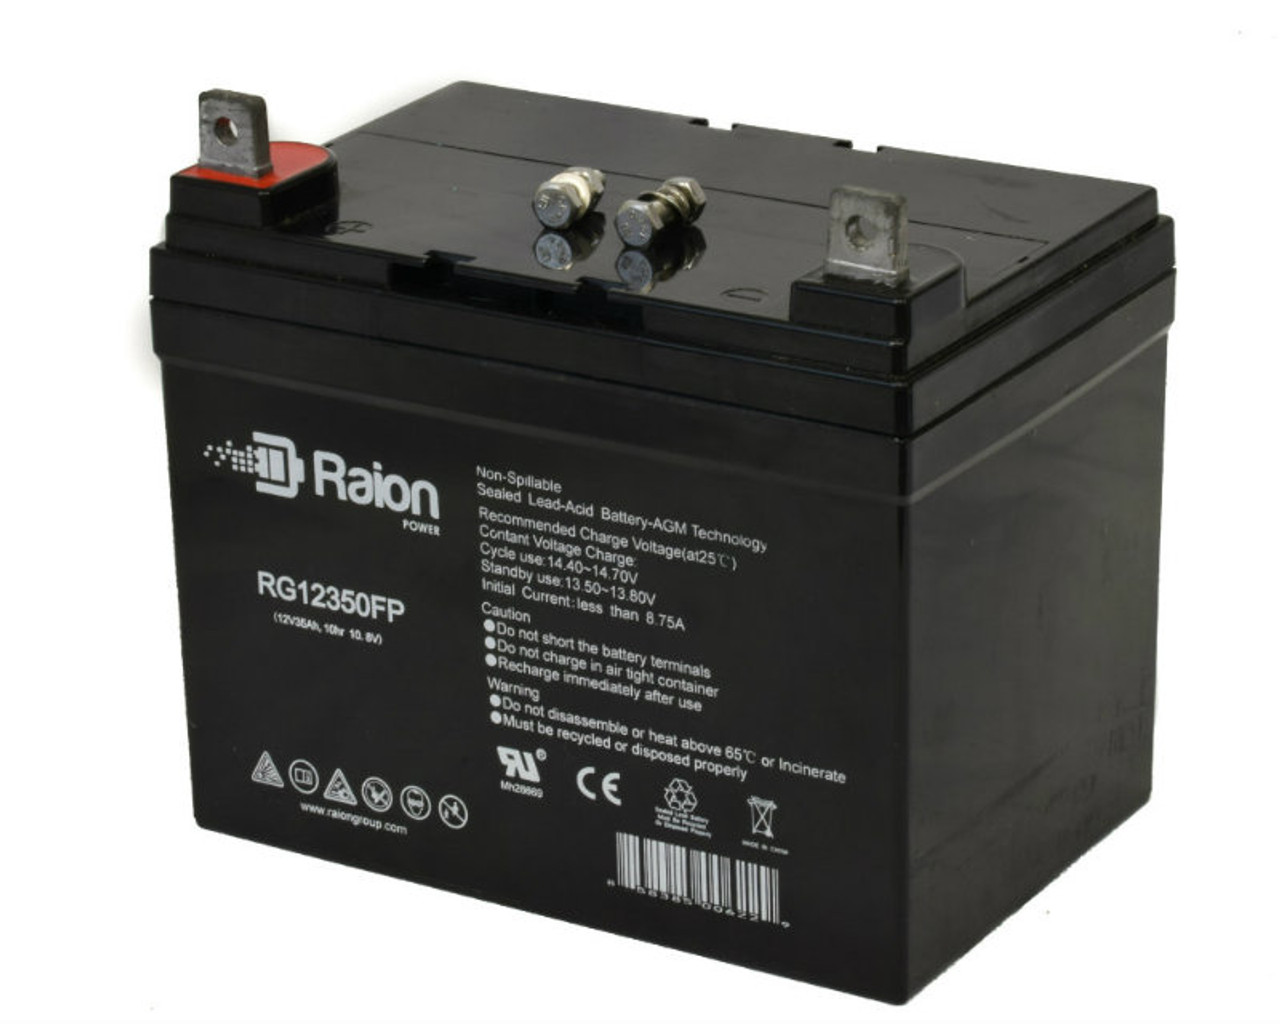 RG12350FP Sealed Lead Acid Battery Pack For Pride BoXSter Mobility Scooter